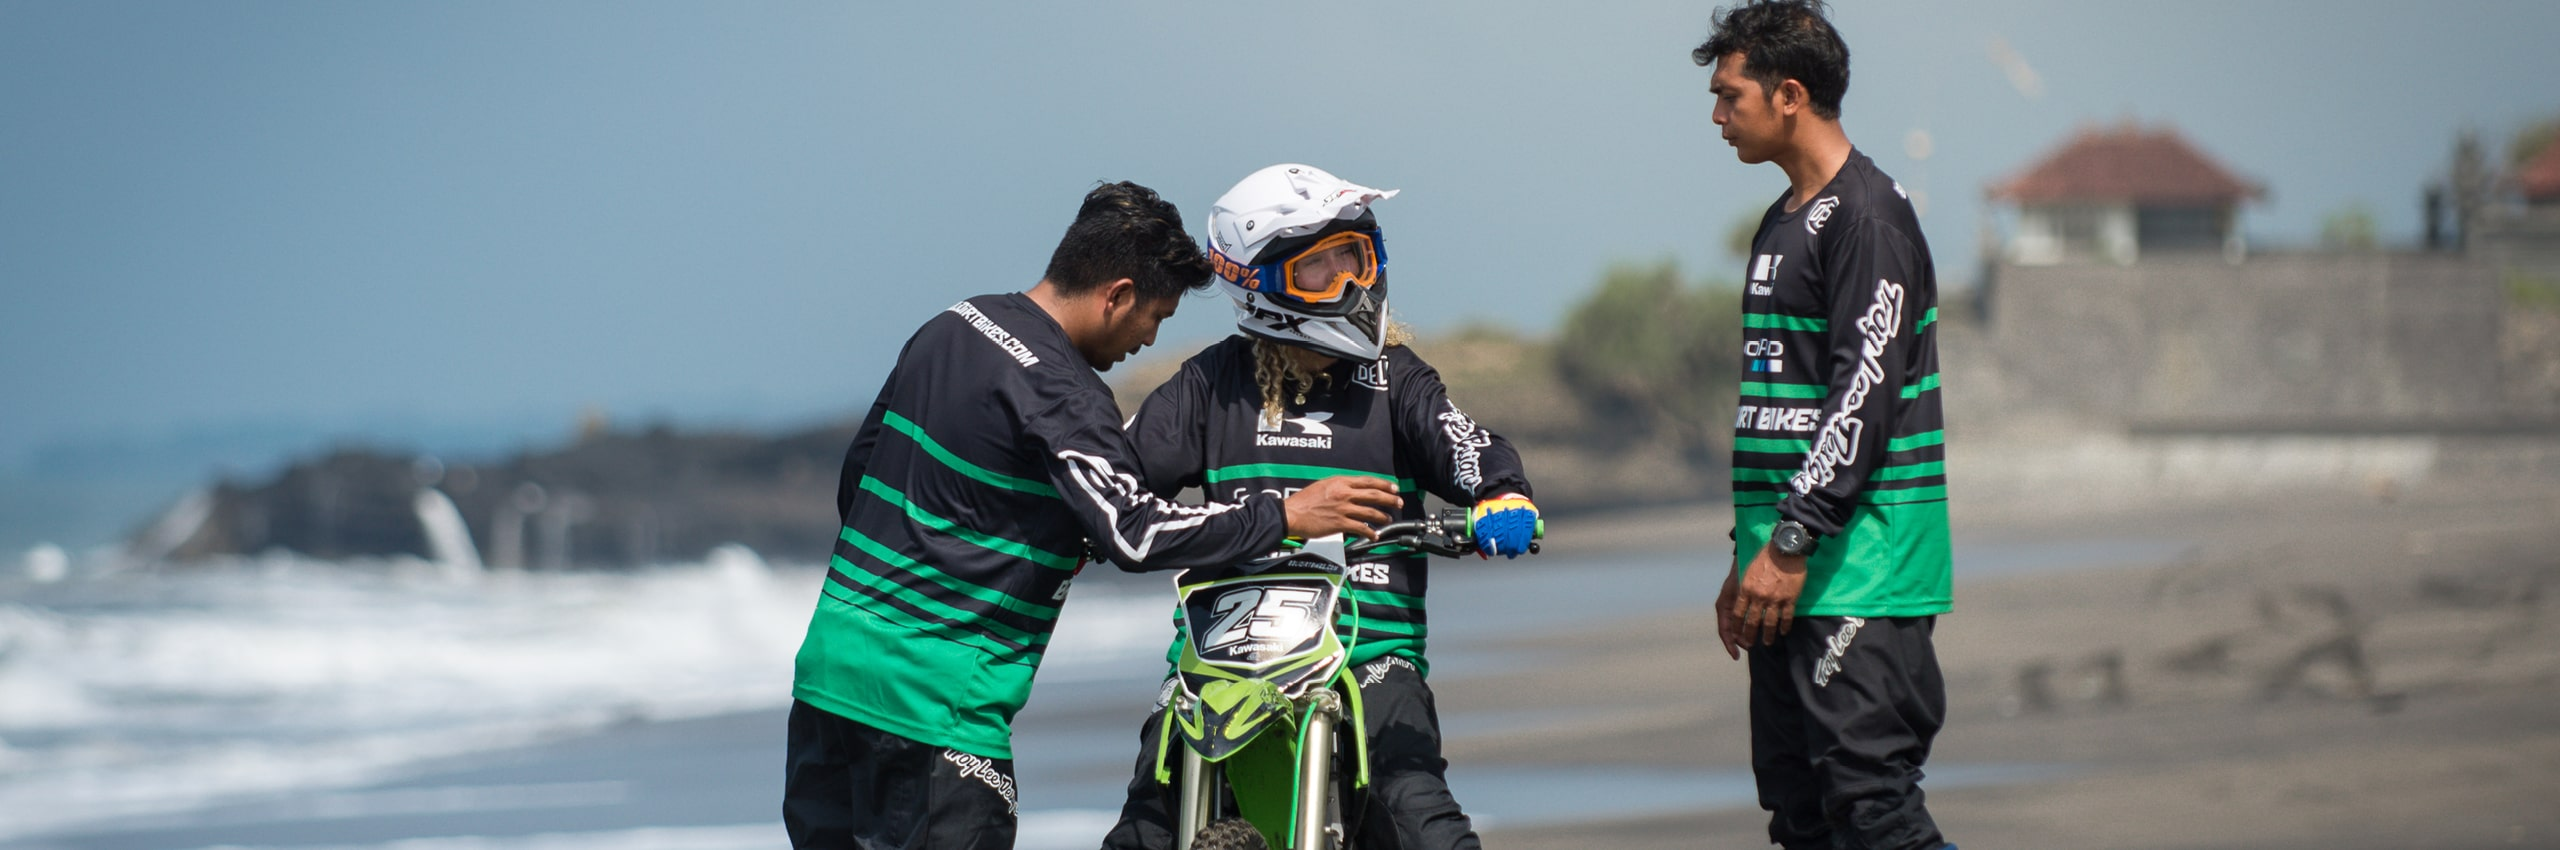 Bali_Dirt_Bikes_Learn_to_ride_Slider7